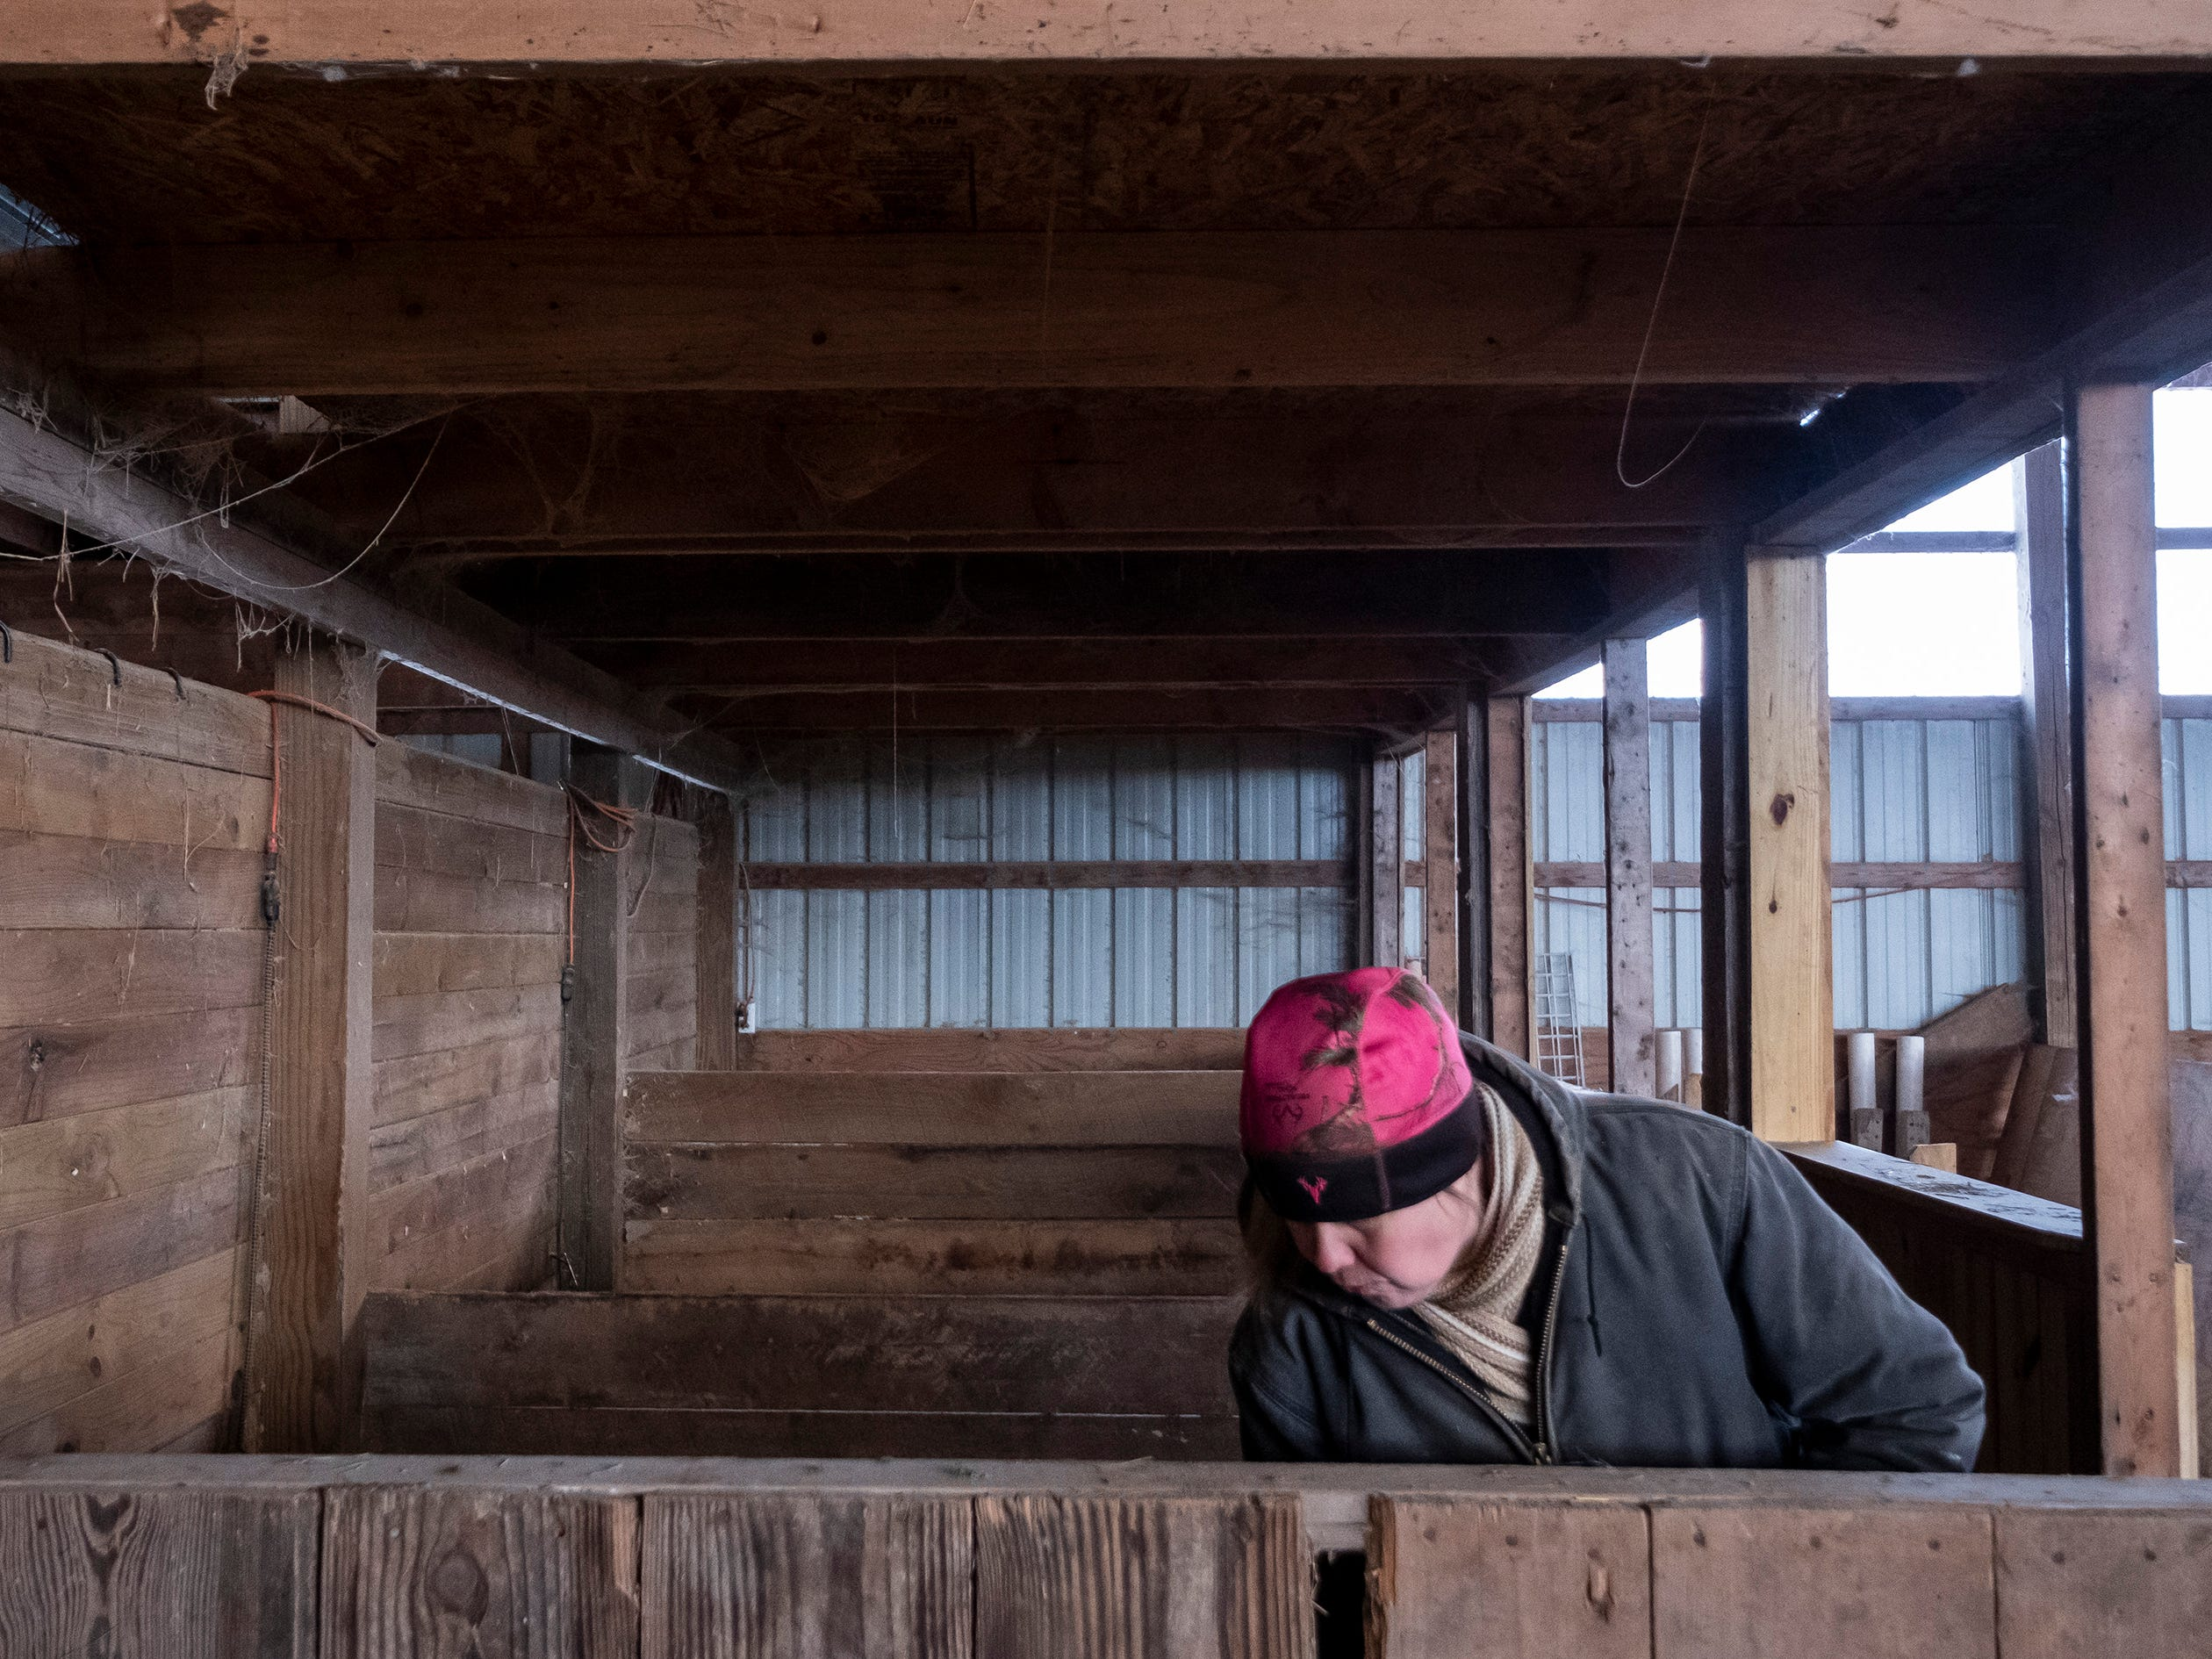 "Tammie Miller cleans a row of stalls inside her barn Thursday, March 7, 2019. Miller said cleaning stalls is one of her favorite activities. ""It's relaxing time... Kind of therapeutic."""